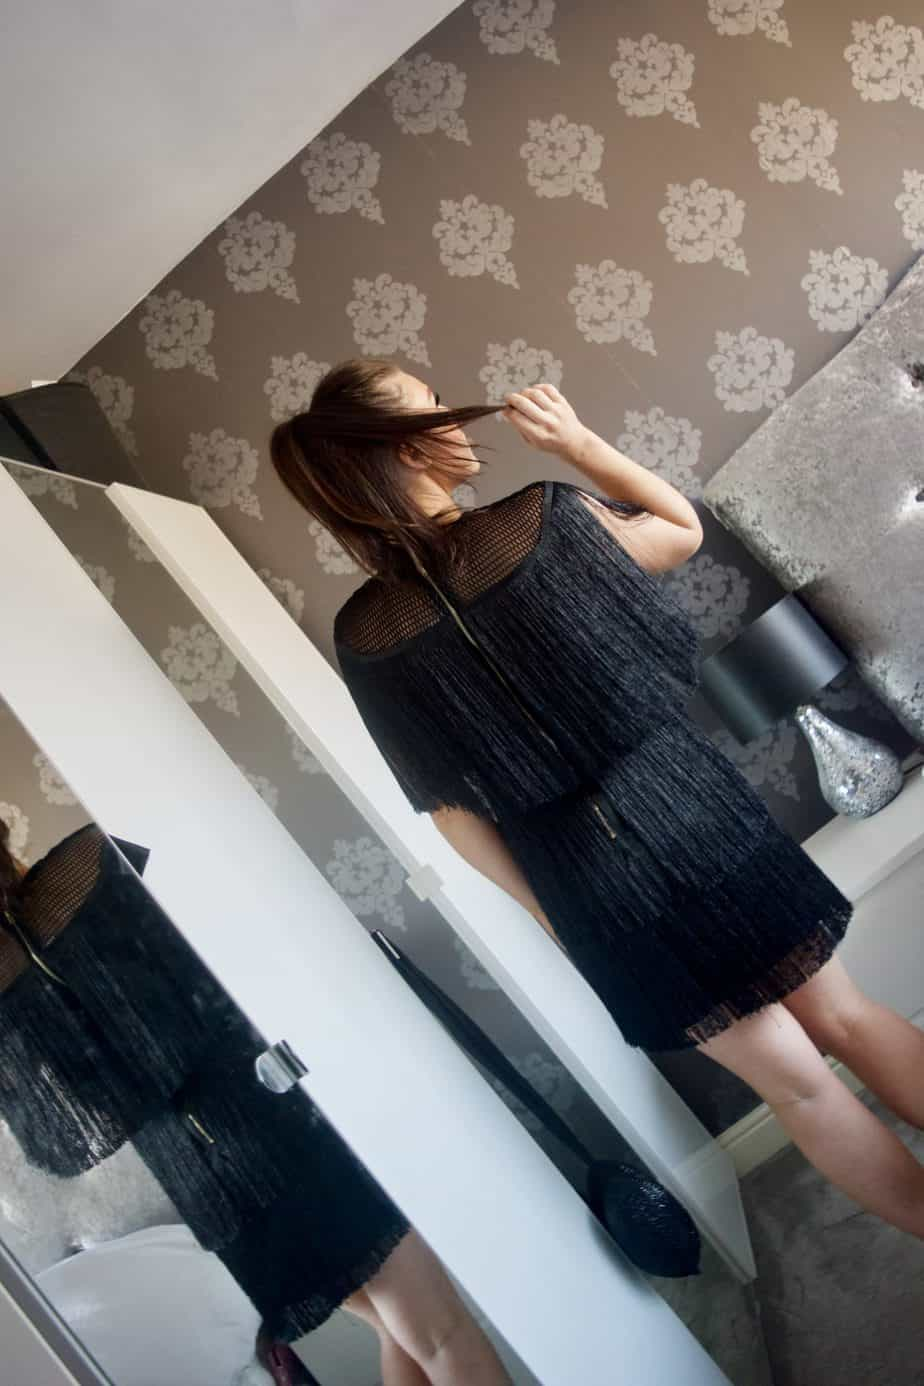 The back of the Christmas party dress I chose from Boohoo, showcasing the gold zip